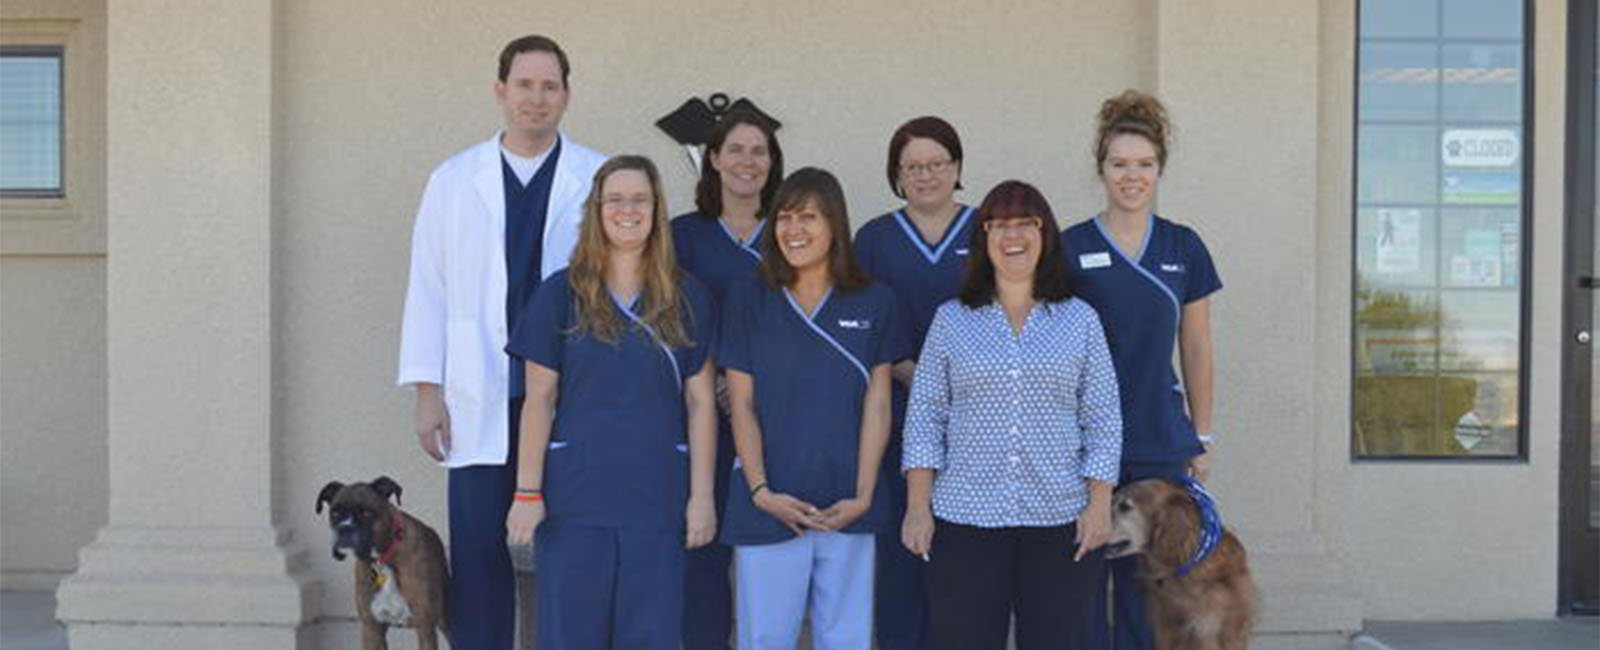 Homepage Team Picture of VCA 29 Palms Animal Hospital